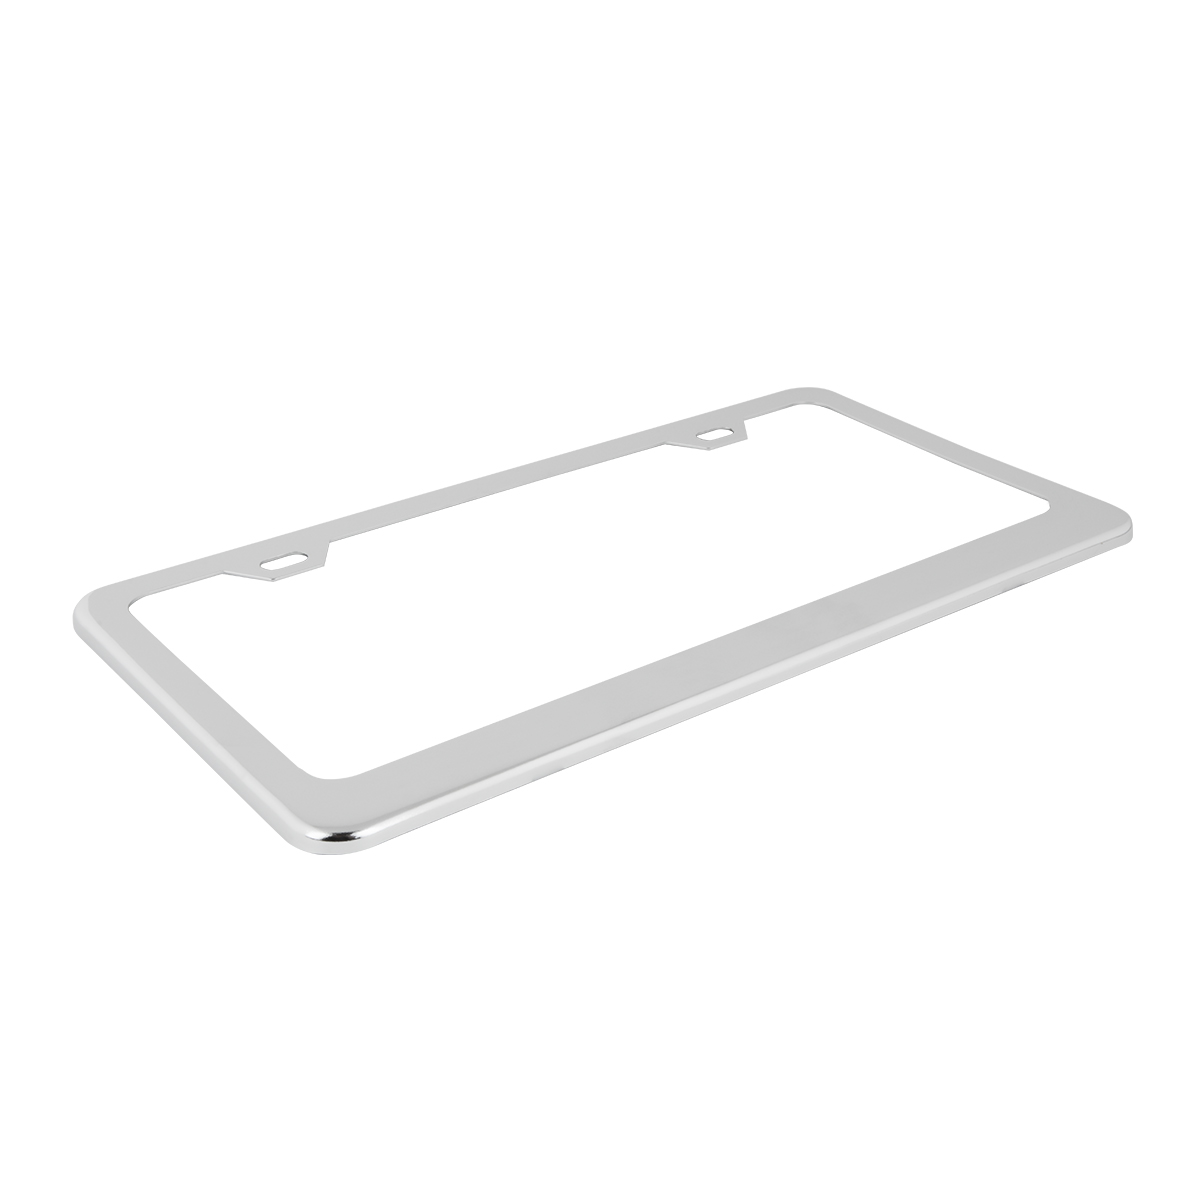 Plain Stainless Steel 2 Hole License Plate Frame - Top View